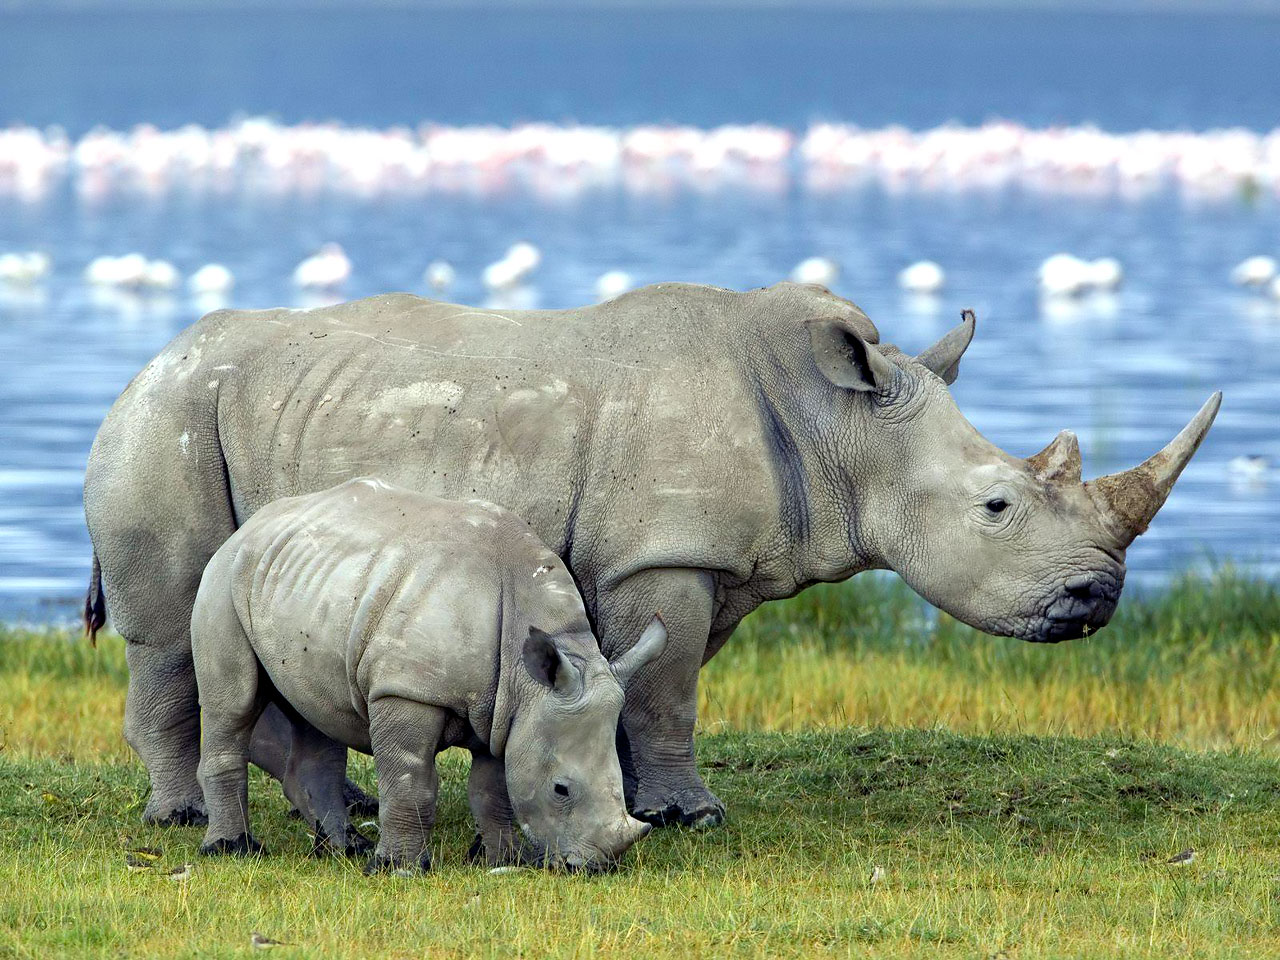 Two rhino poachers along with AK-series rifle arrest in Assam